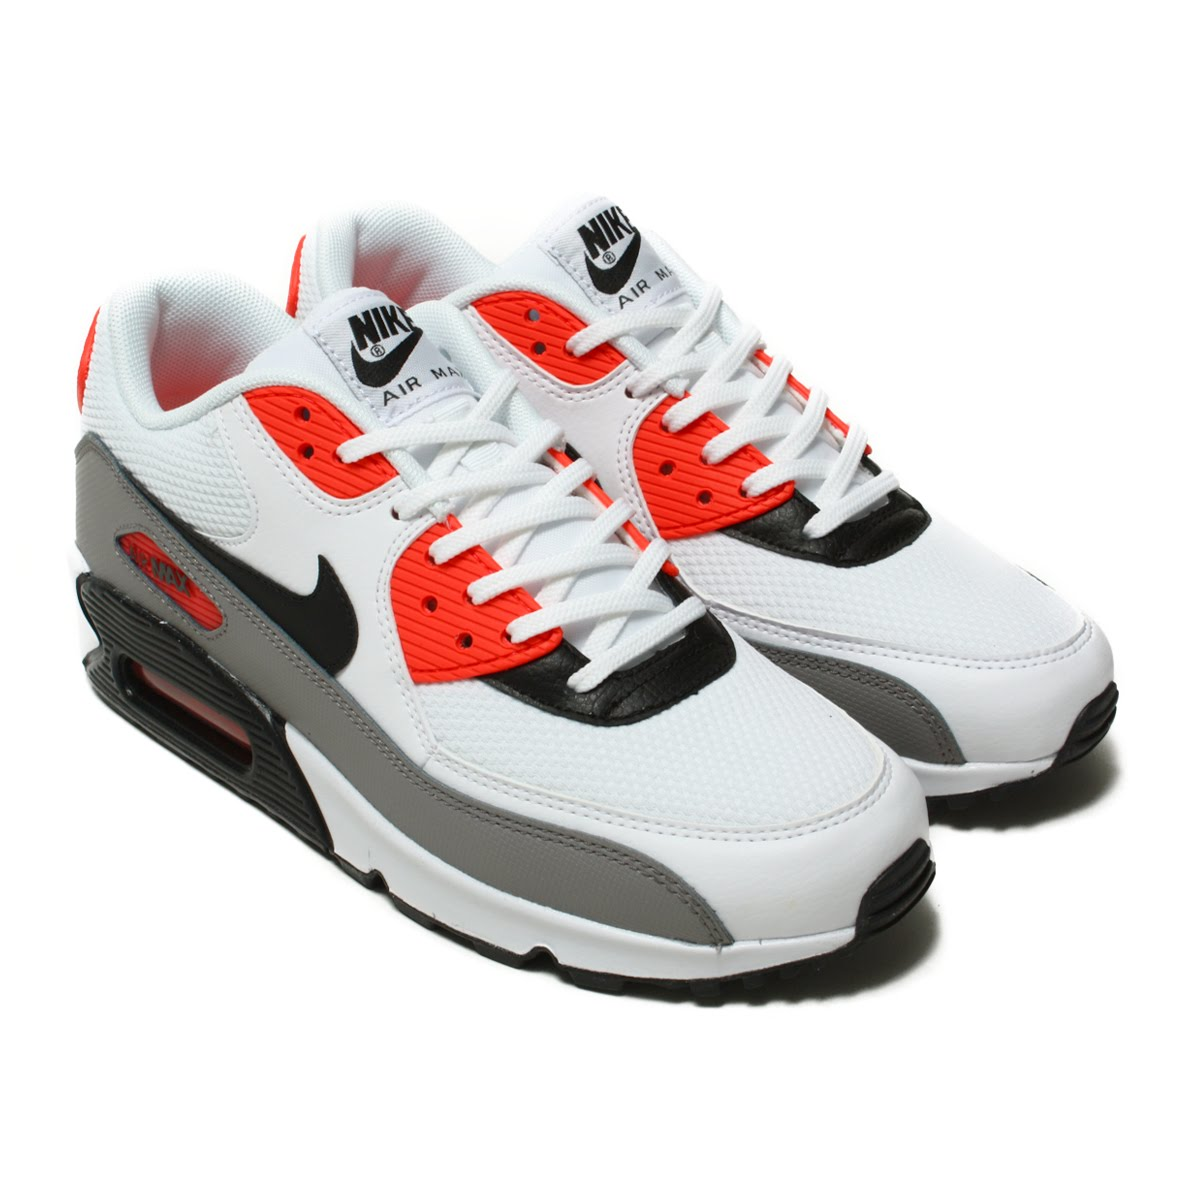 official photos 23090 beedf Nike women Air Max 90 reproduces a tradition of the running of the 90s  faithfully while renovating a design to be usable in the casual scene.